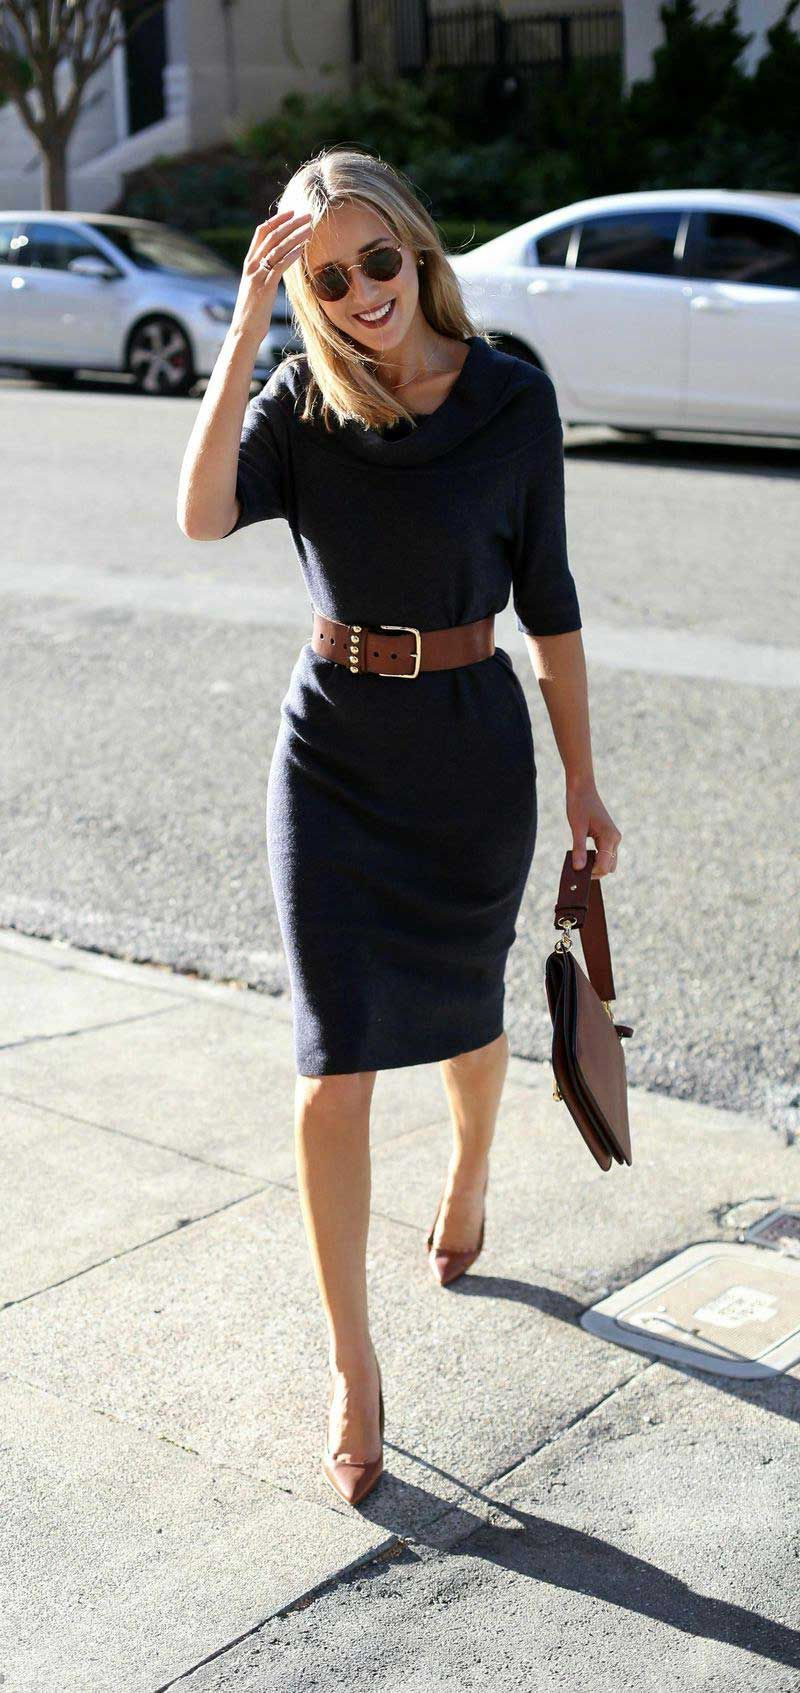 30 Professional Business Attire for Young Women 33 – Business outfits